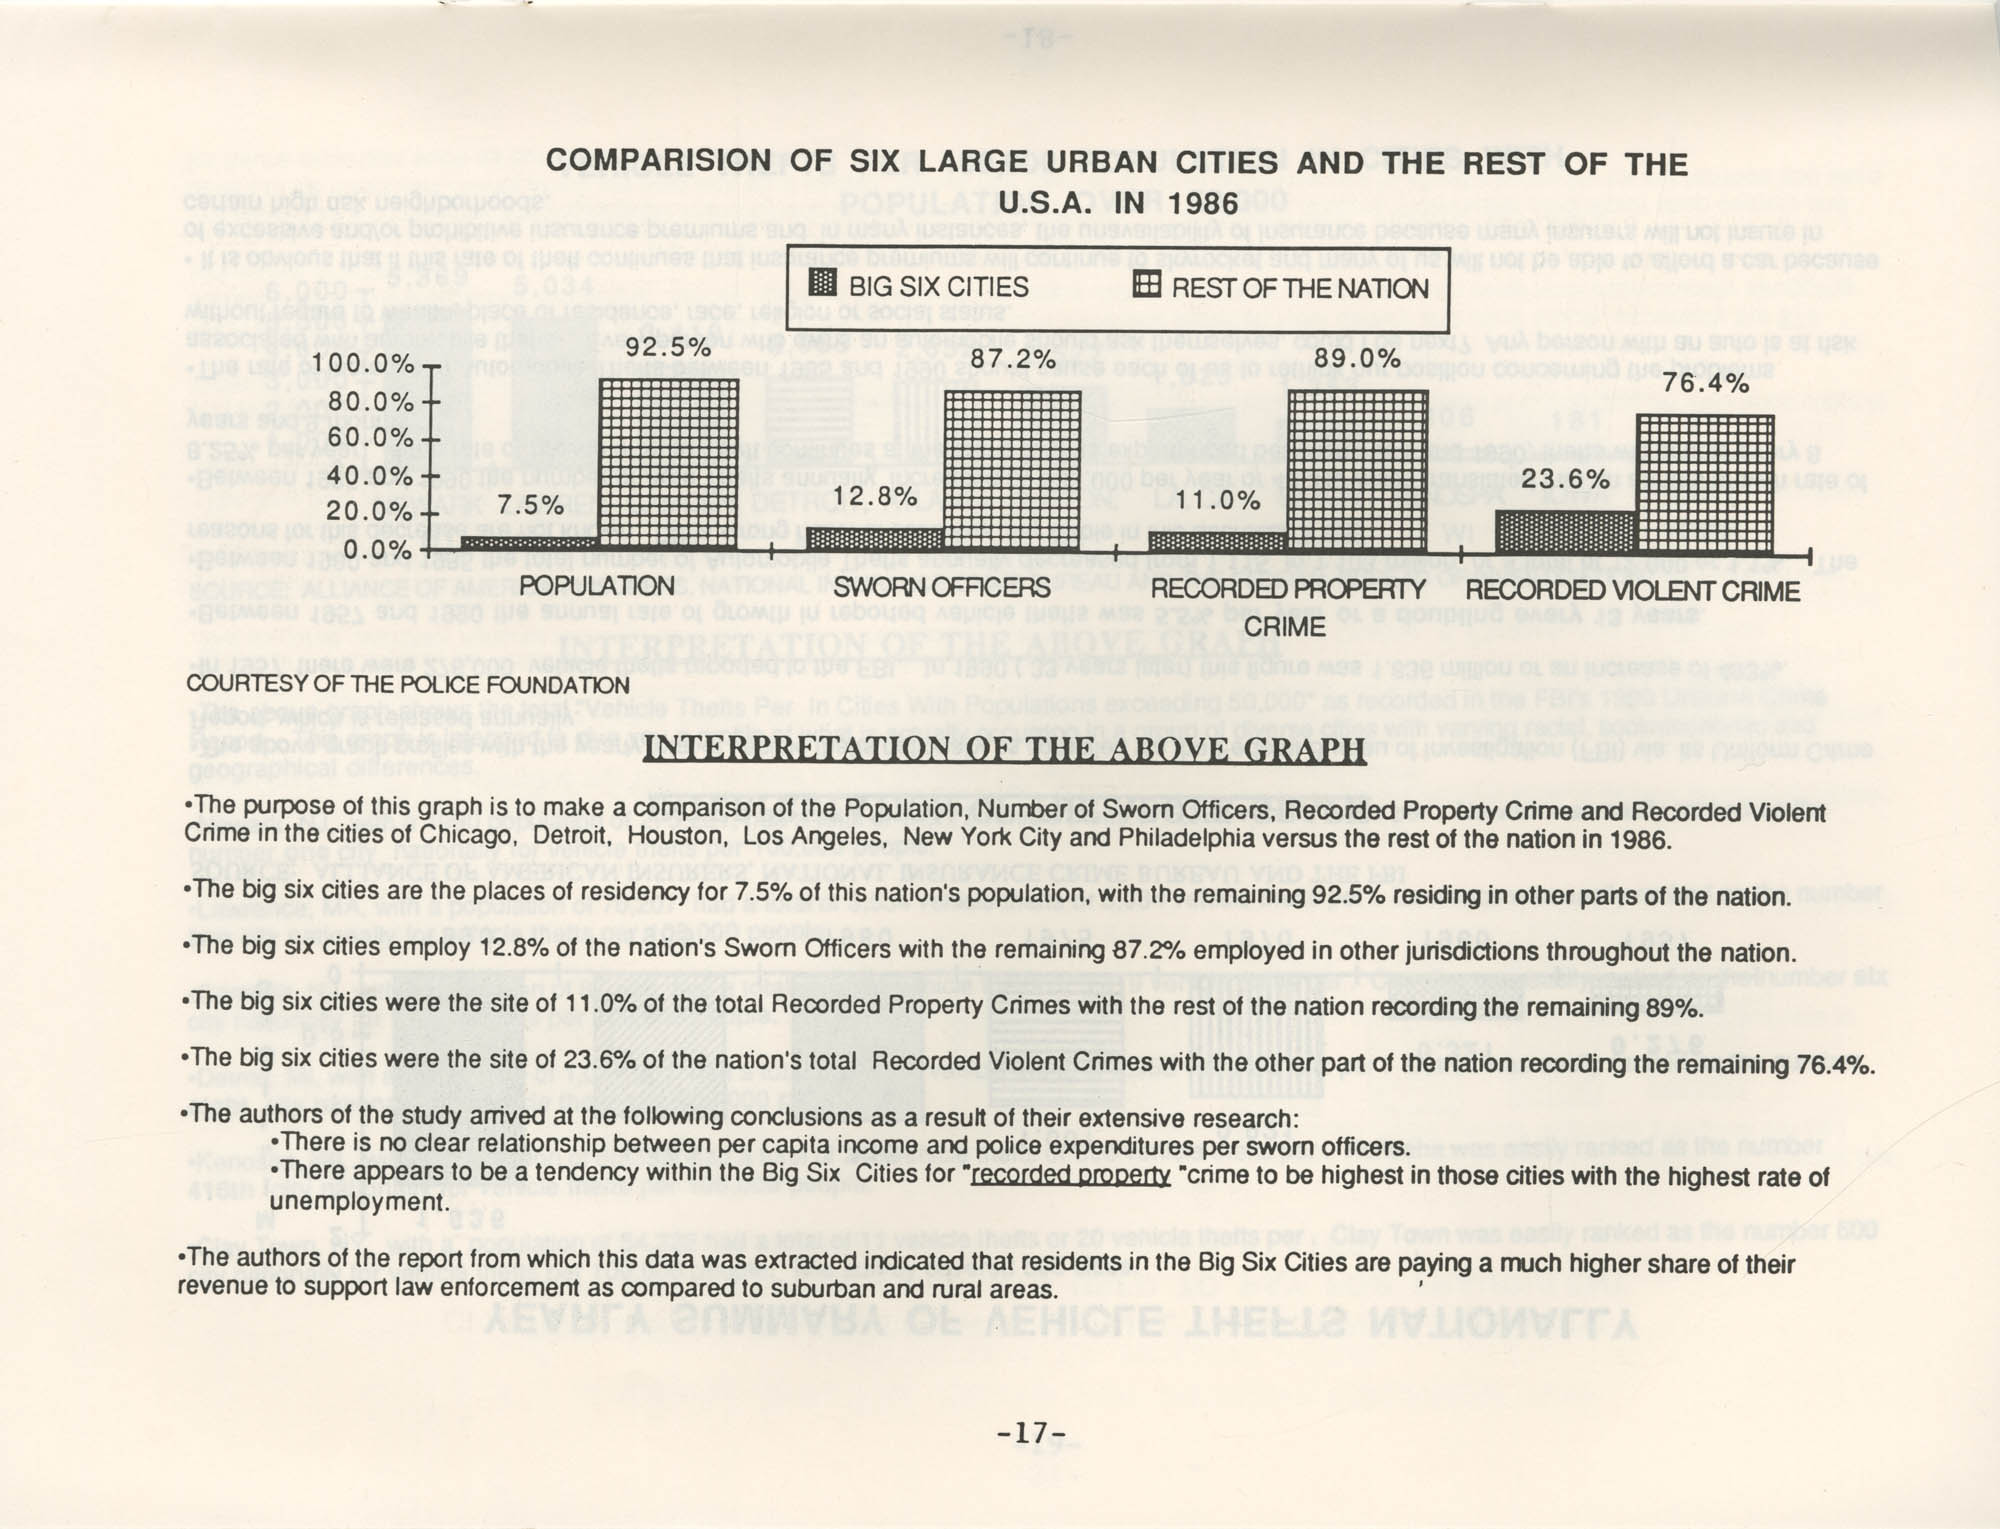 Crime and Criminal Activities in the U.S.A., NAACP National Board of Directors, Page 17